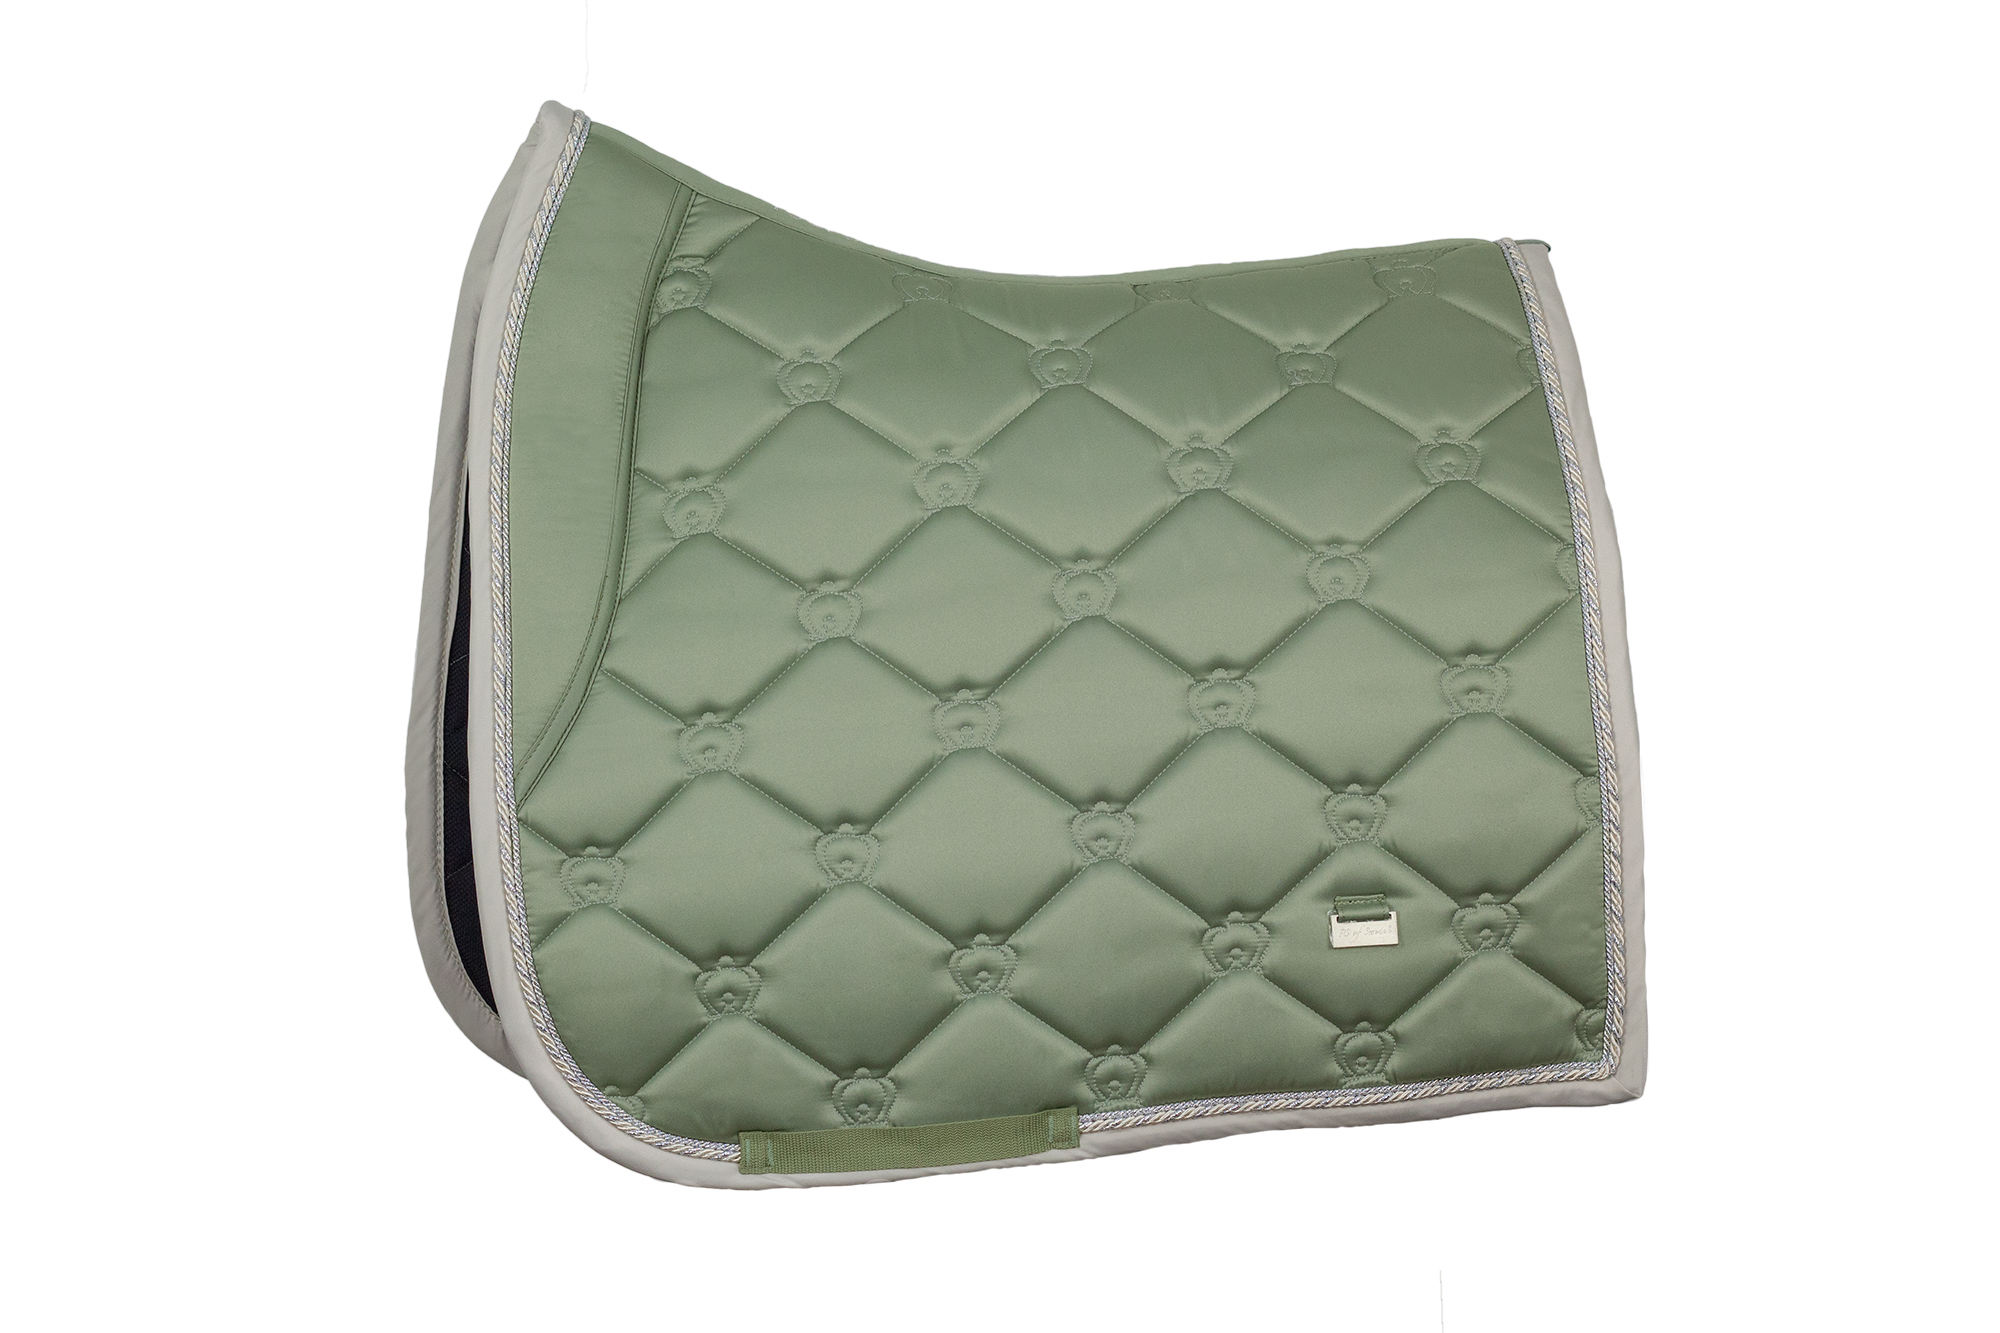 monogram saddle pad for dressage with horse and pony